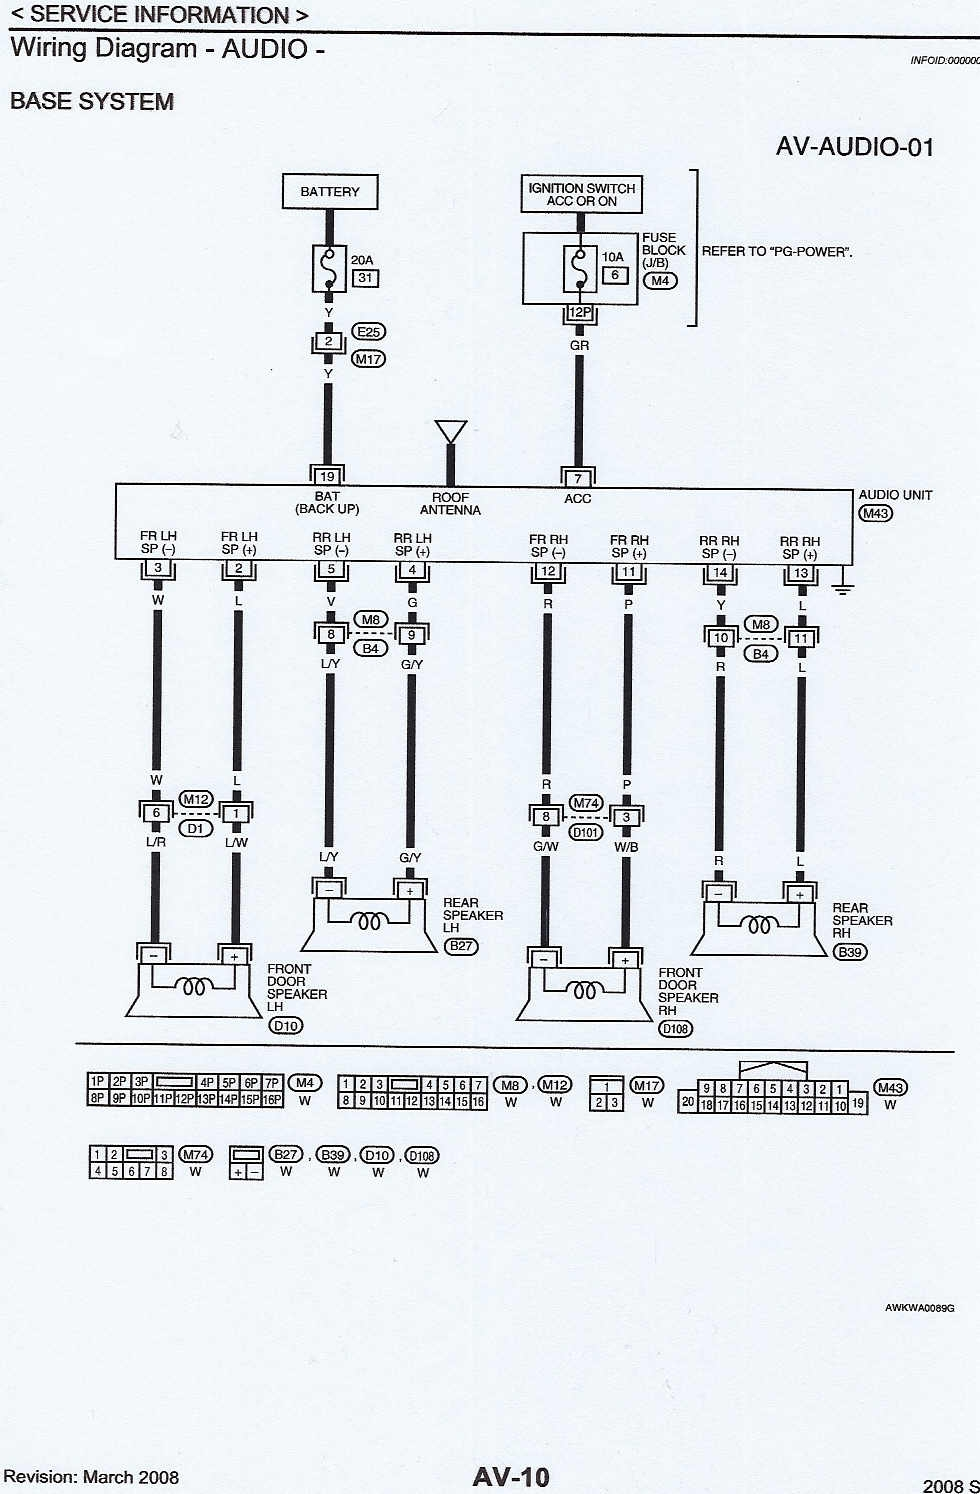 2003 nissan sentra radio wiring diagram schematics and wiring 4th generation nissan maxima or infiniti i30 years 1995 to 1999 2017 nissan sentra radio wiring diagram car